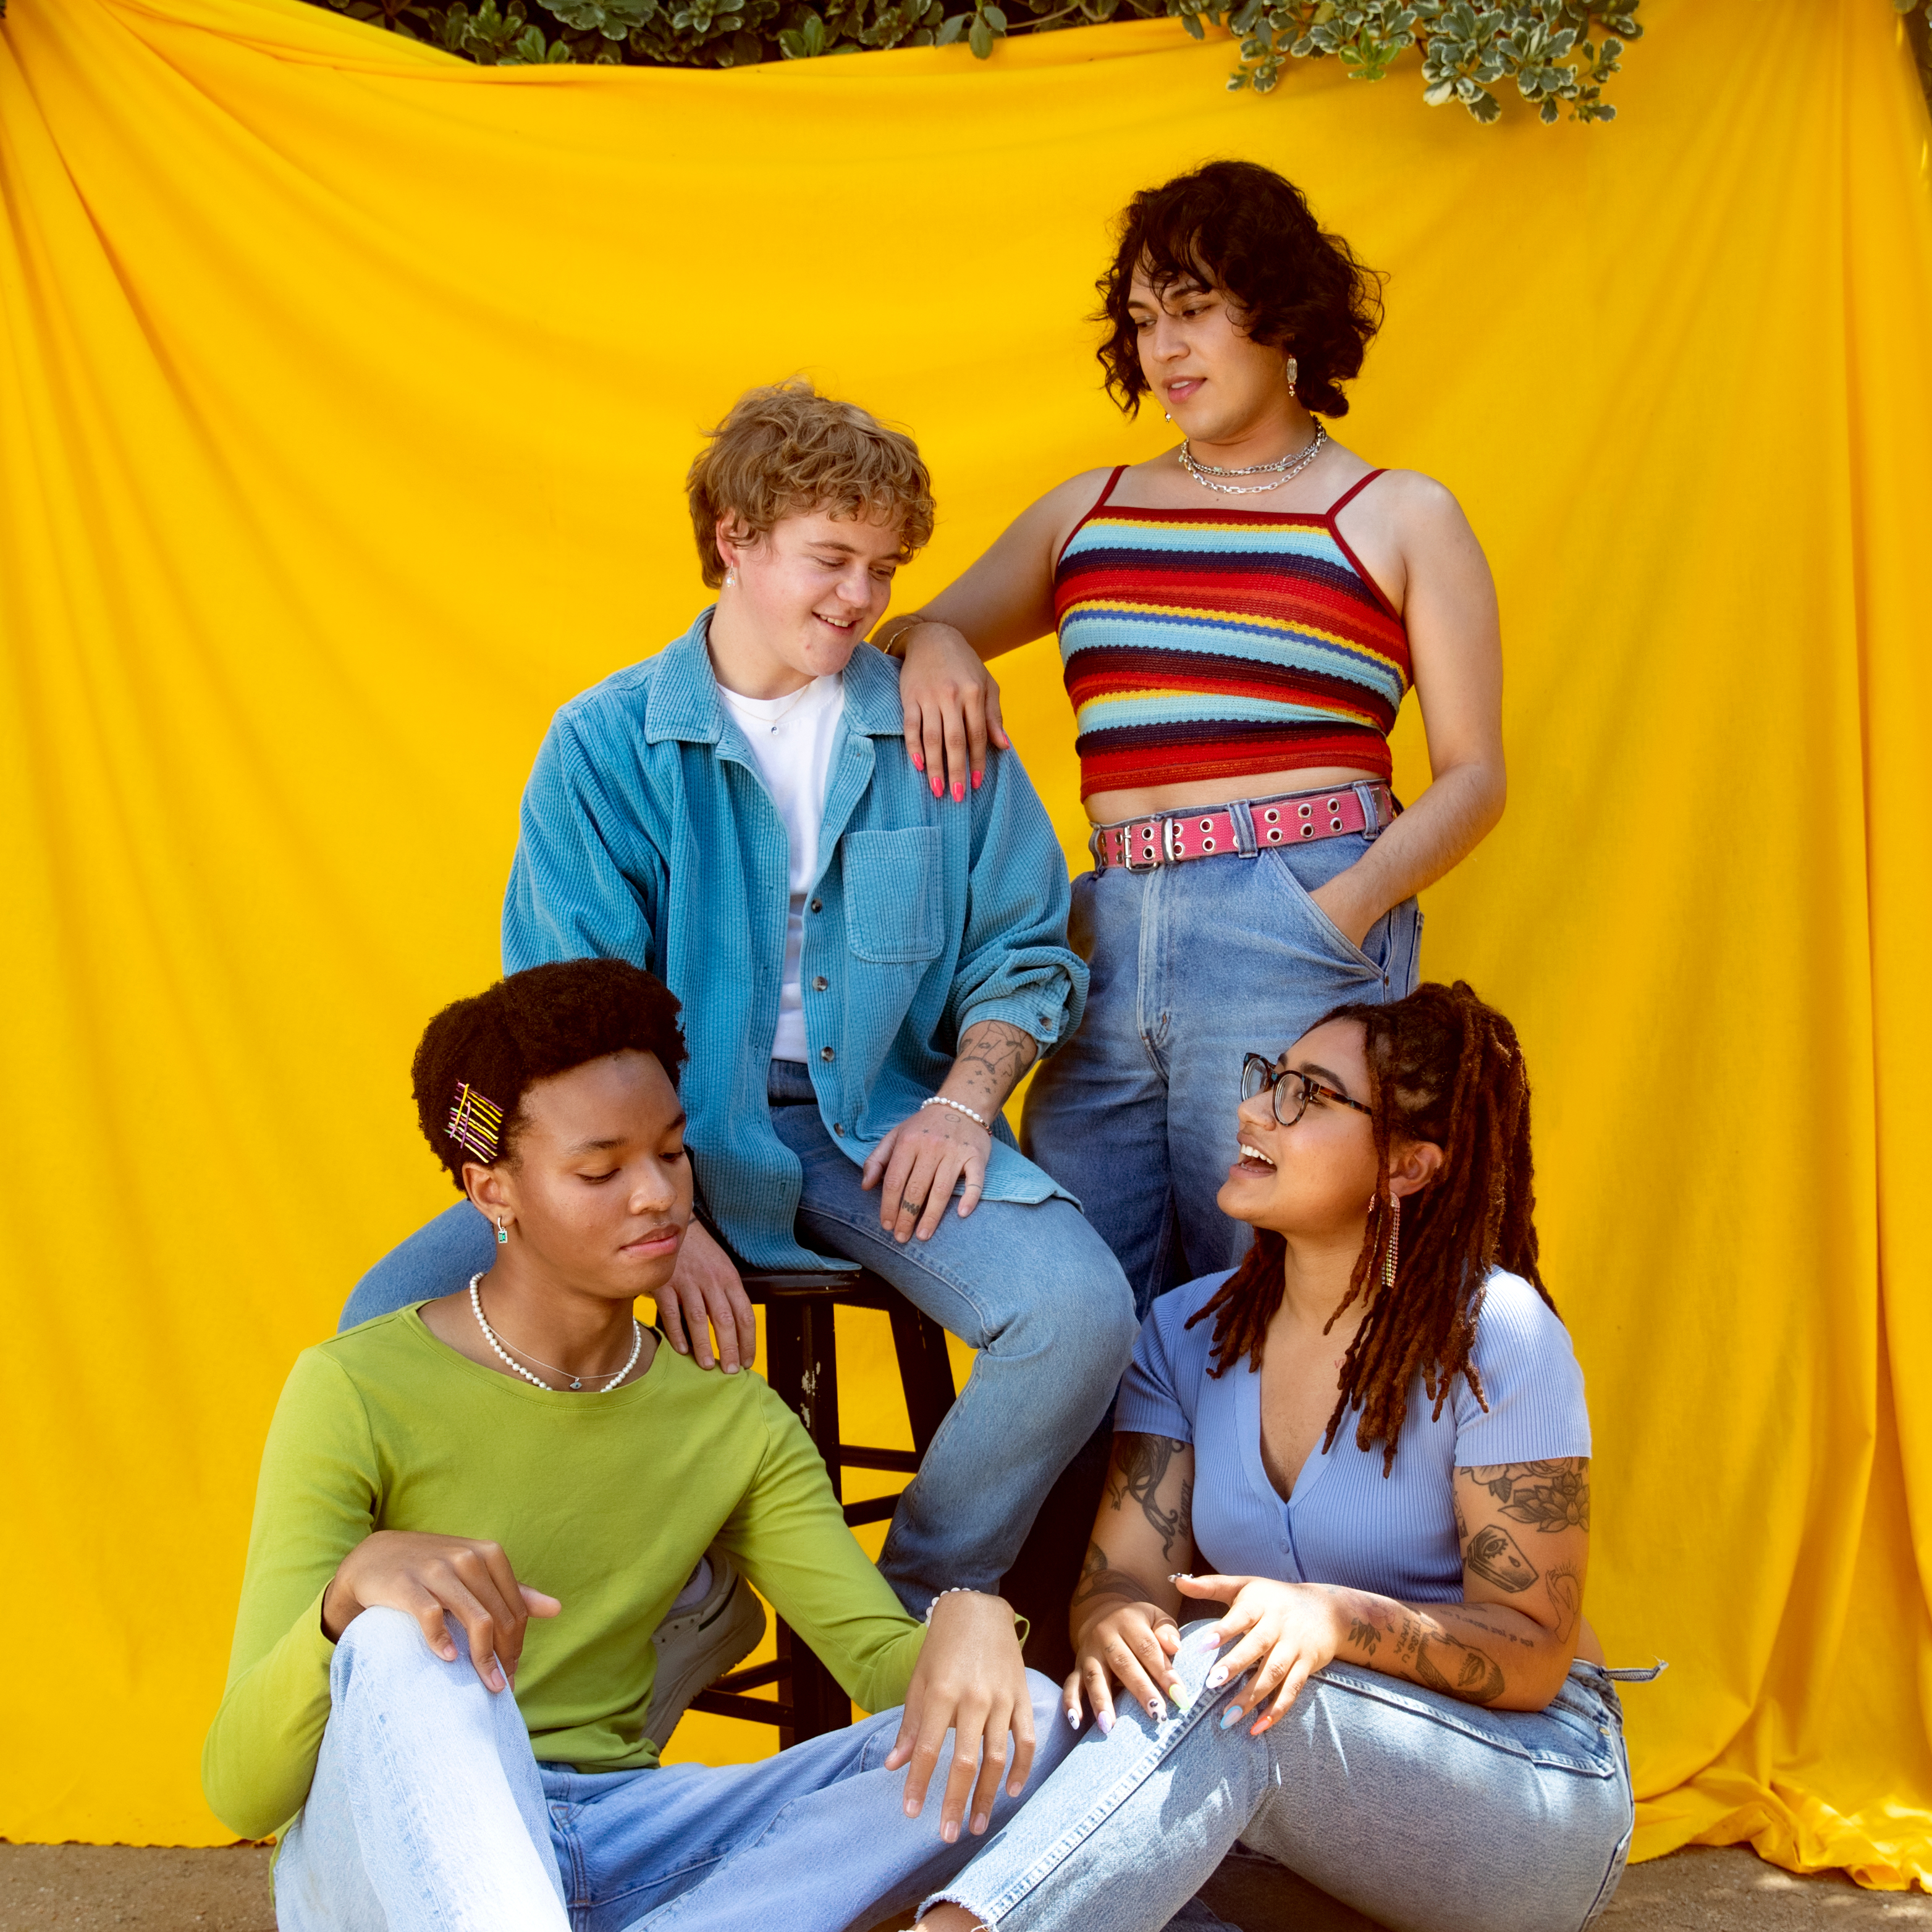 Four young people in colorful clothing standing against a yellow backdrop talking.